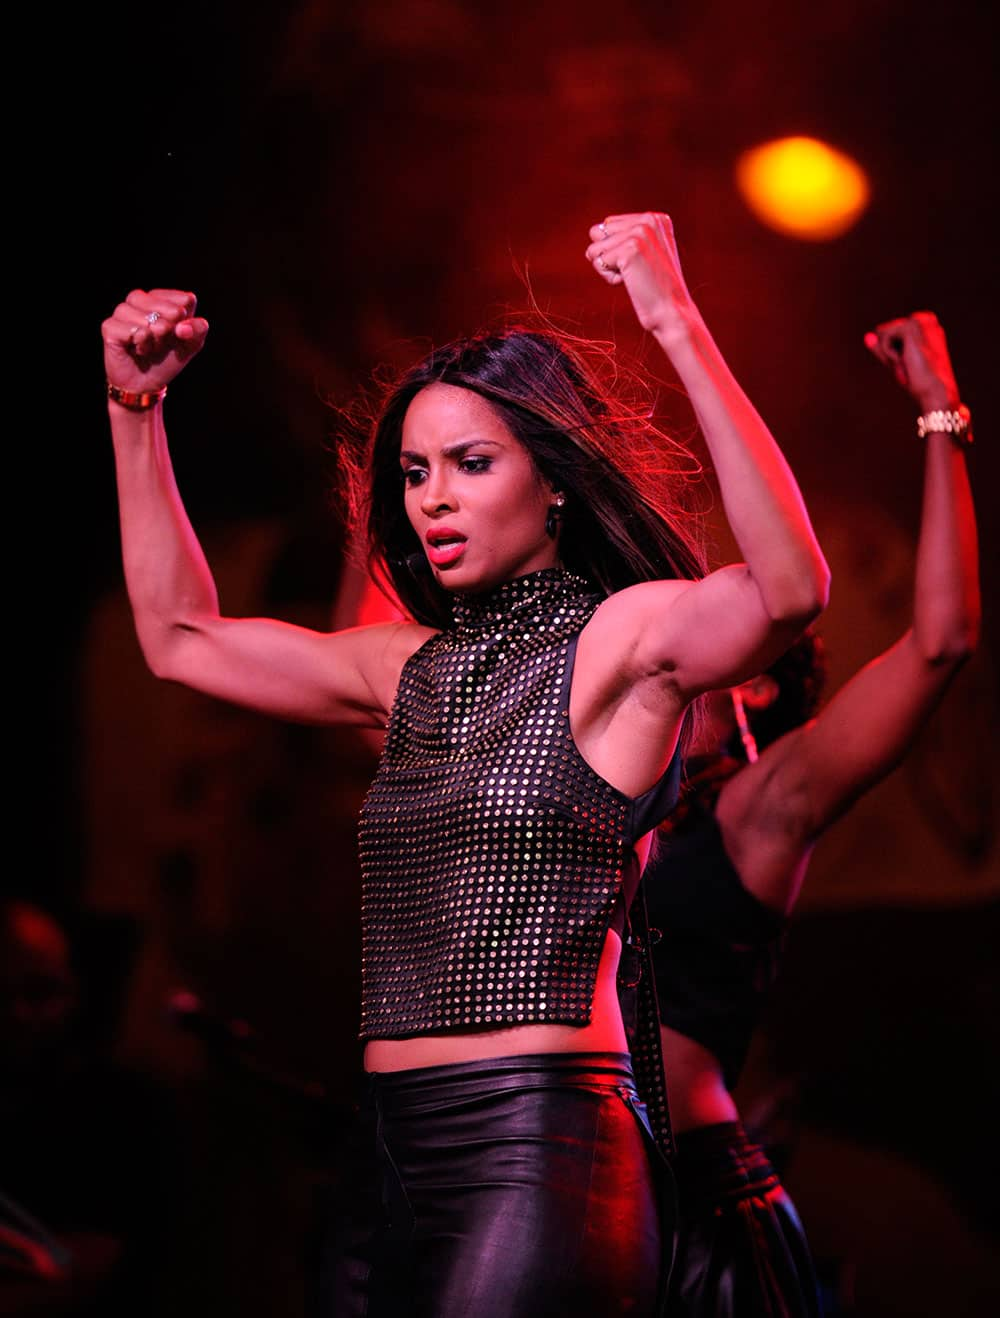 Ciara performs at The NFL Kickoff Eve Party, Wednesday in Baltimore.